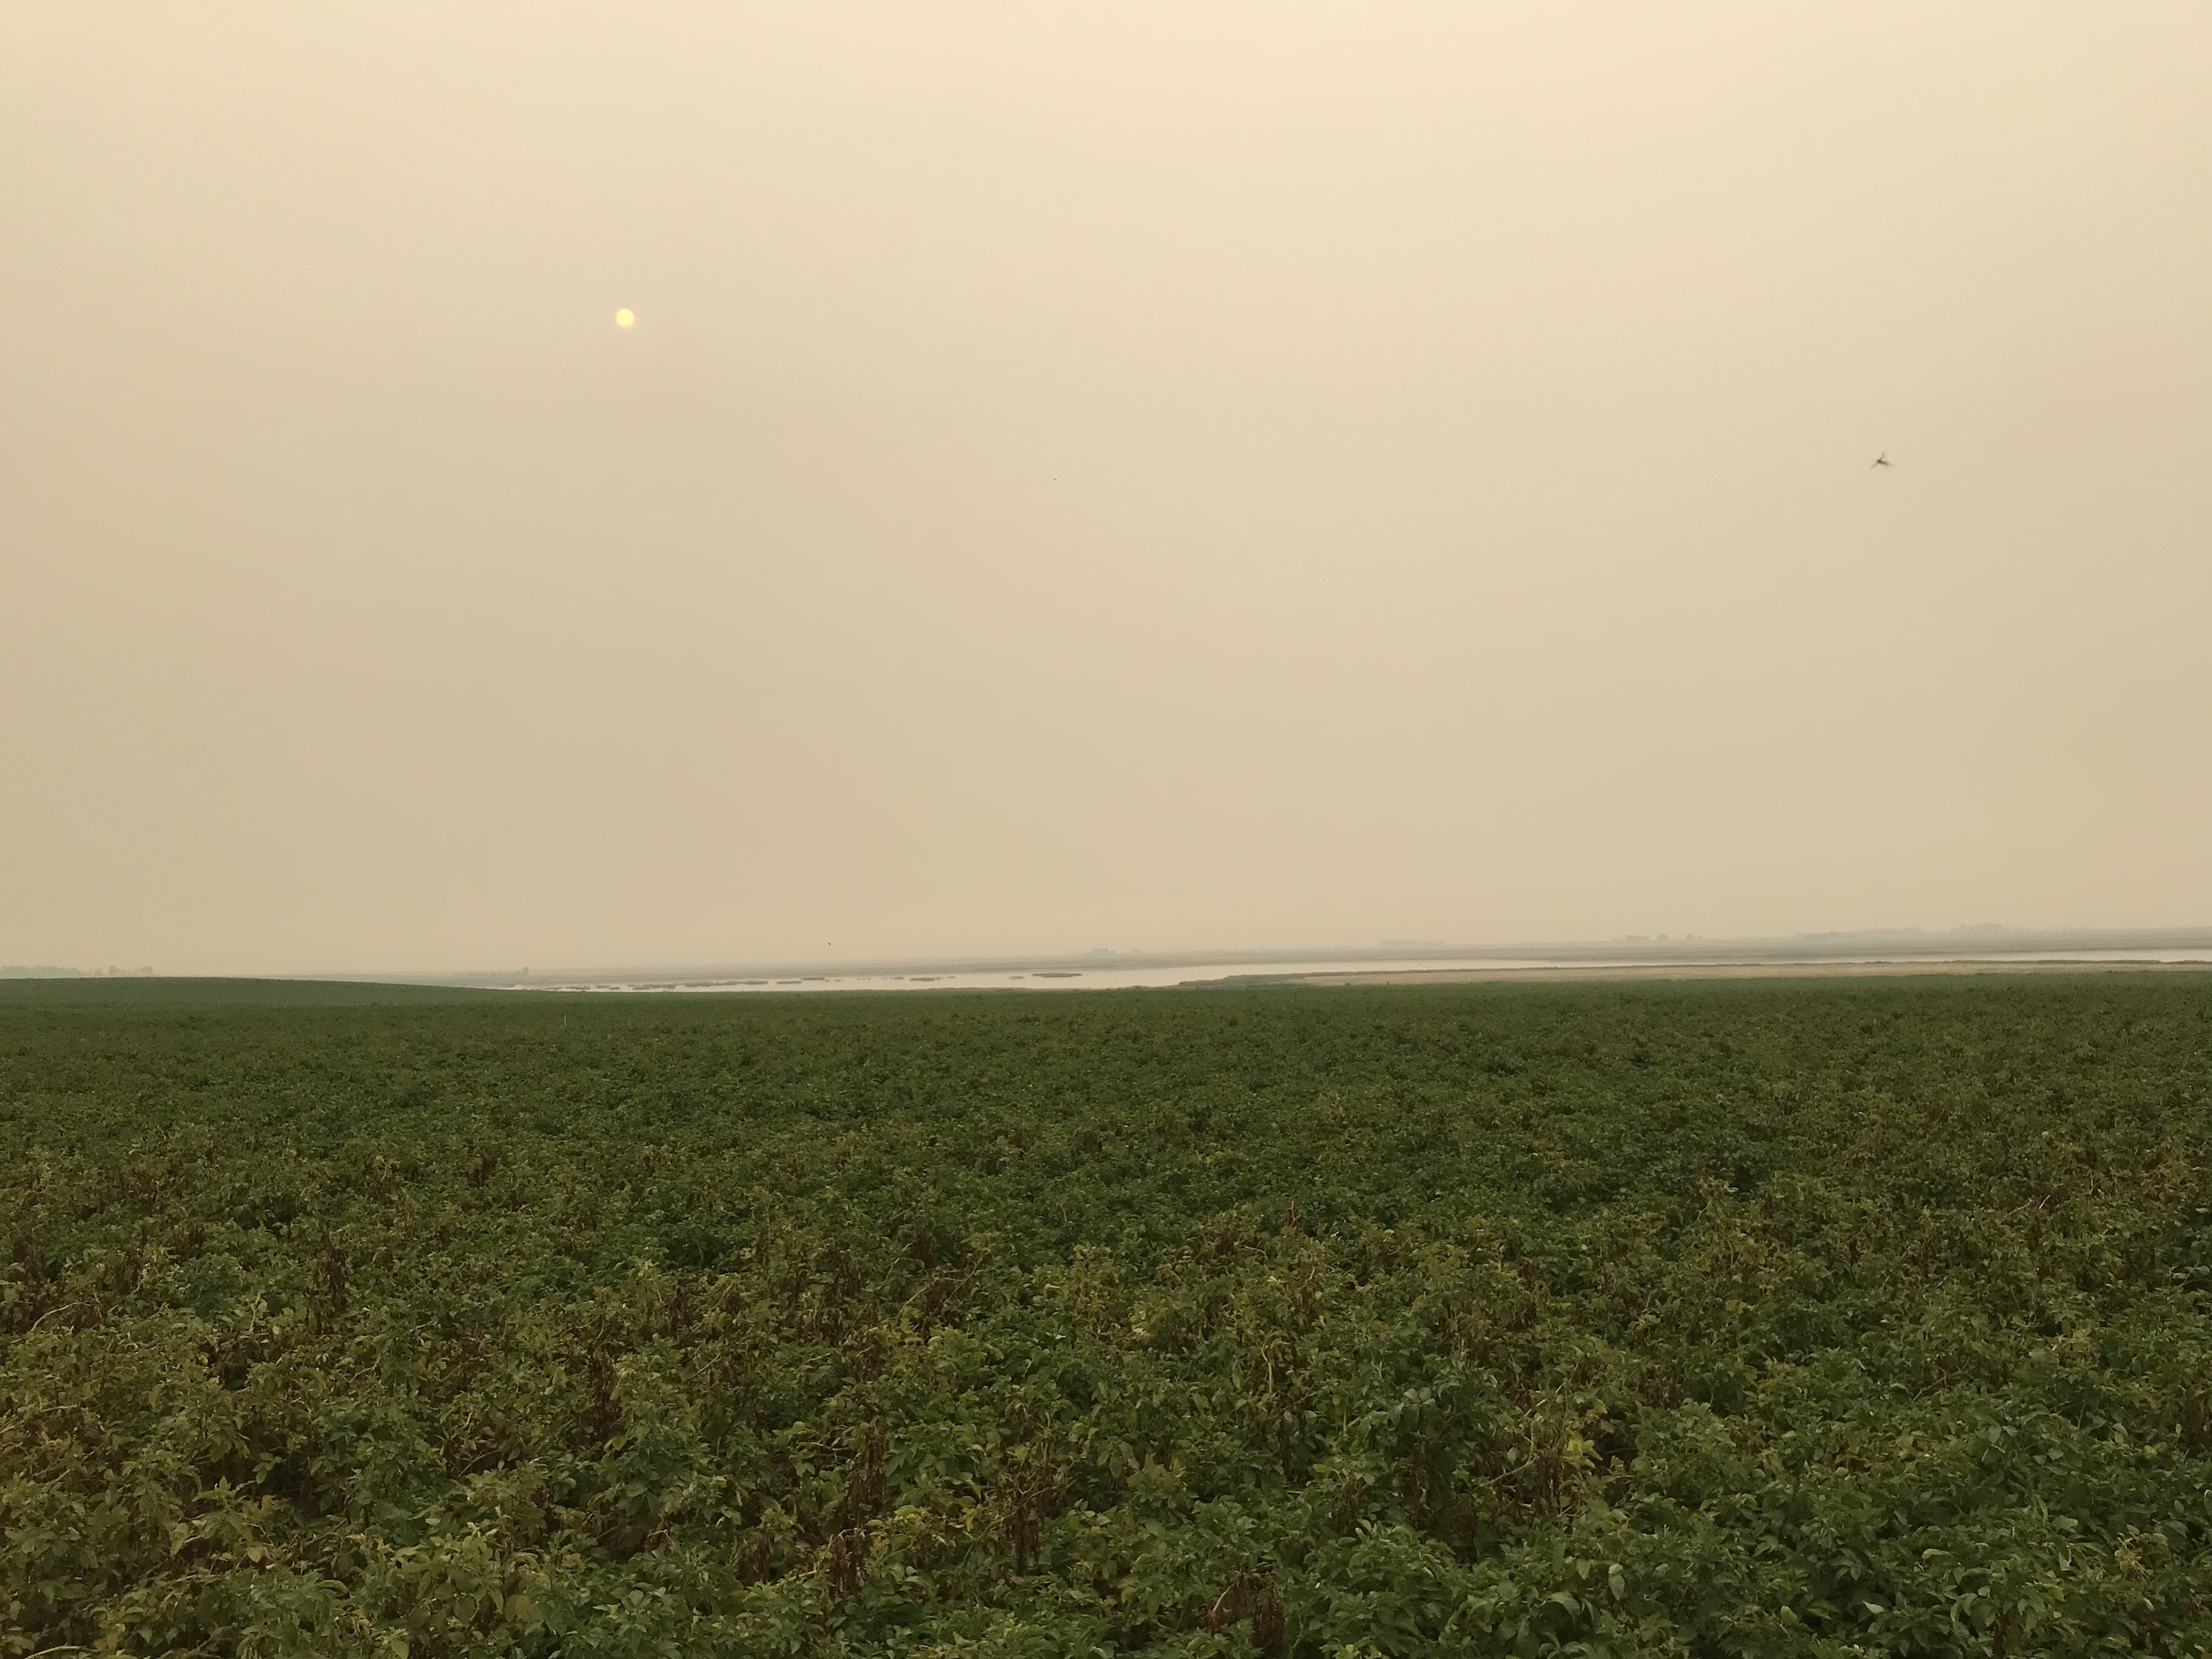 The sun is nearly blocked out from the smoke. Taken August 15, 2018.